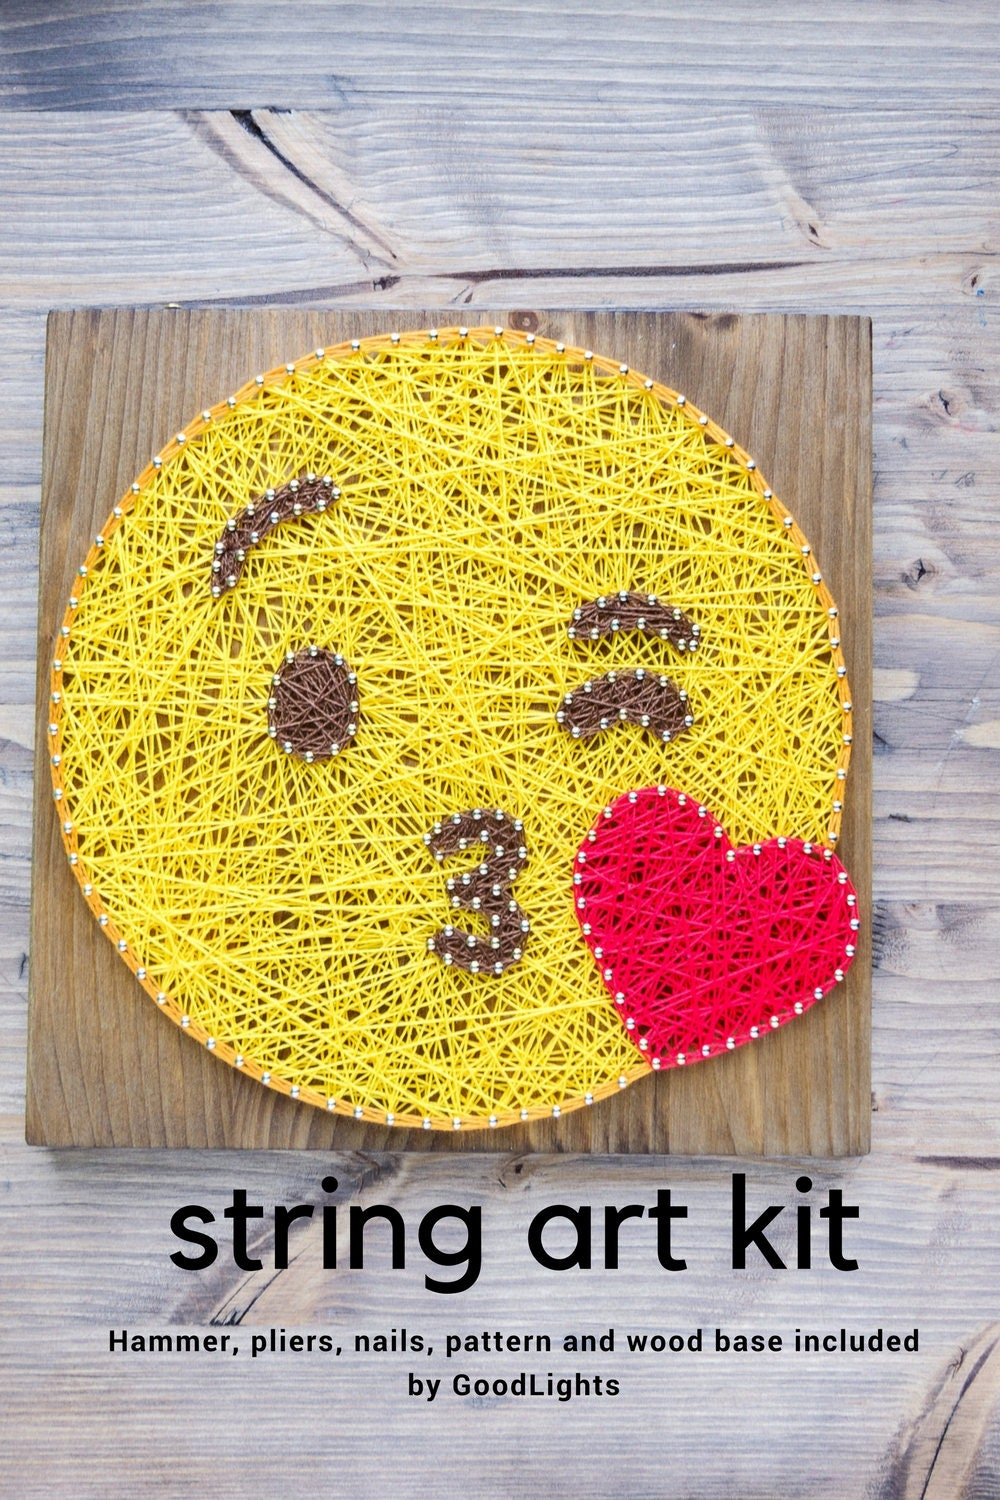 Kiss and wink emoji string art kit string art kit for adults | Etsy